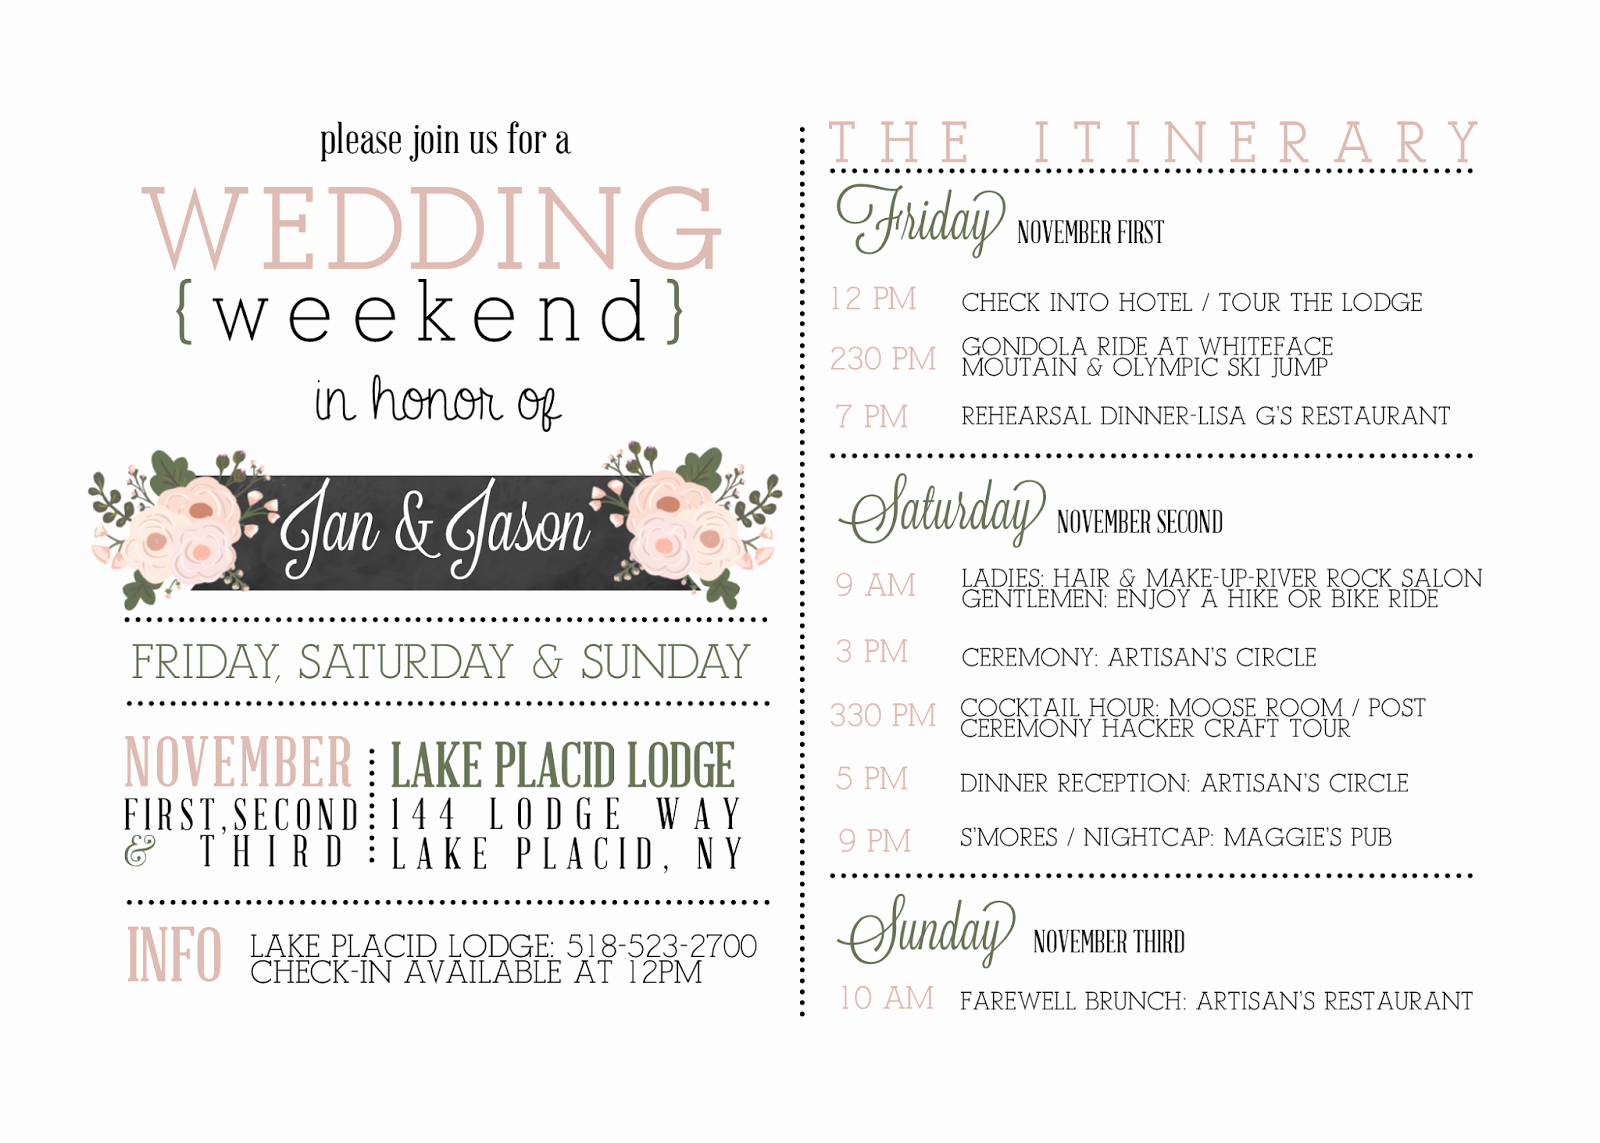 Wedding Weekend Itinerary Template Free New Wedding Weekend Itinerary Google Search …